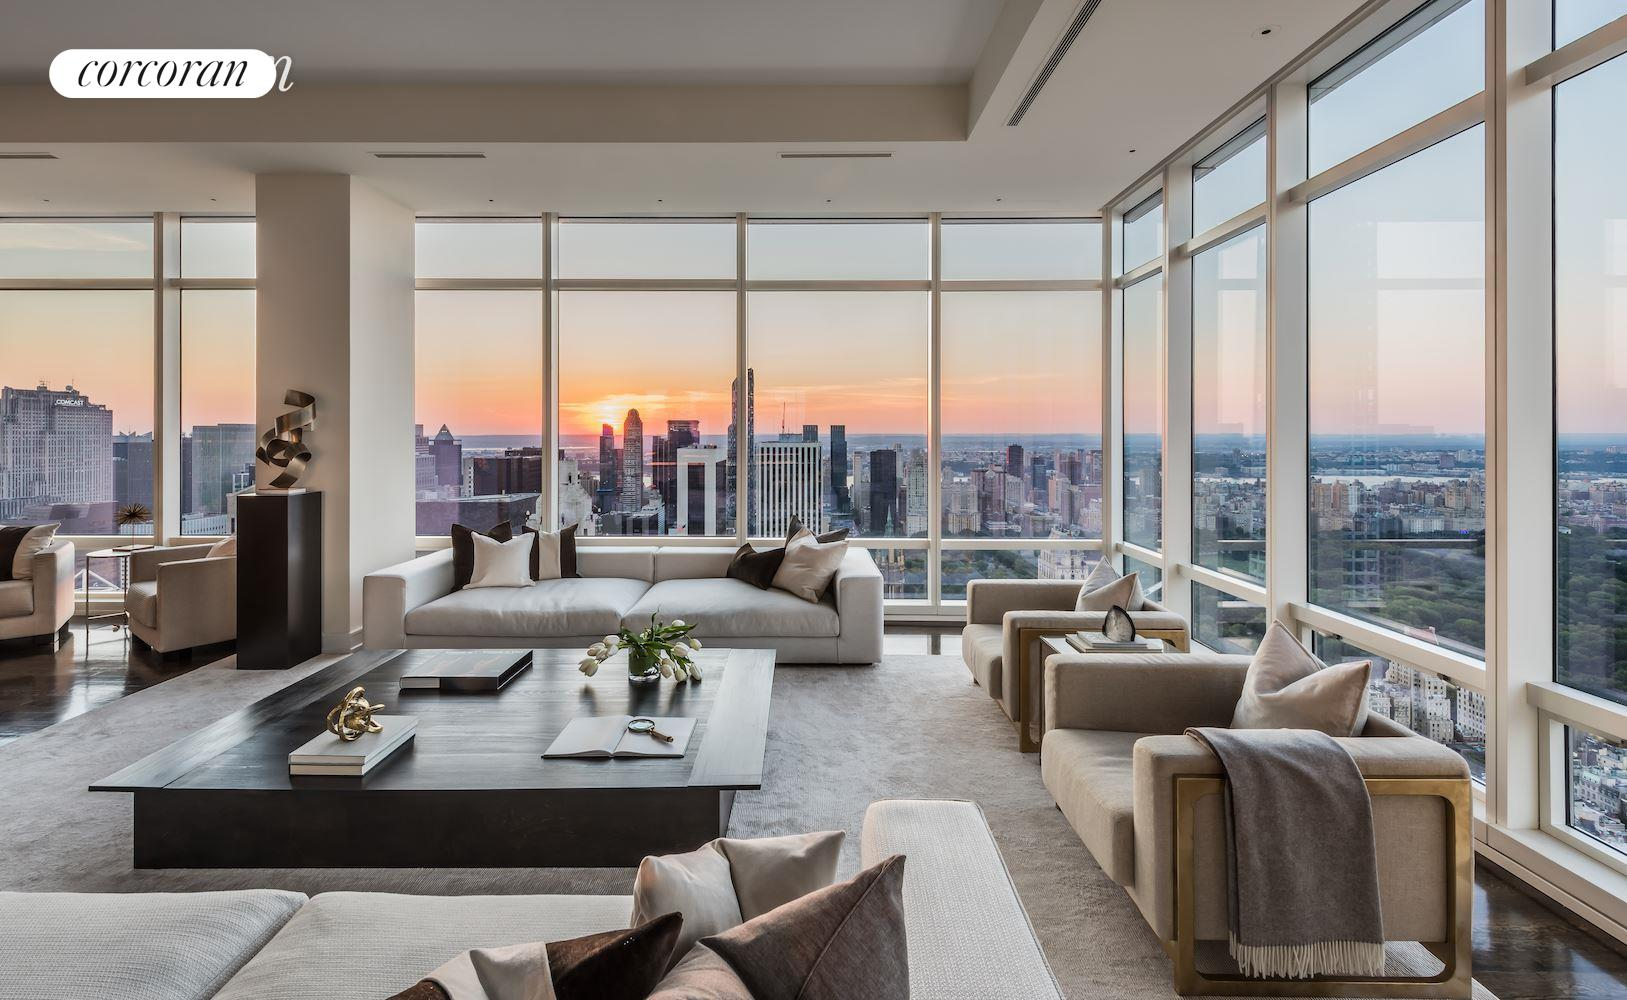 "With over 2500 SF of windows offering uninterrupted view of New York City and Northern, Western and Southern exposures, 151 E 58th St 53W has one of the most impressive views on market. This luxury penthouse for sale at One Beacon Court anchors the famous ""Billionaire's Row.""Through 200 linear feet of 12-foot-high oversized windows, 151 E 58th St 53W has open vistas spanning from the East River to the Hudson and from the Freedom Tower to the George Washington Bridge. At well over 750 feet in the sky, on a clear day you can see beyond the rivers to the Poconos, Catskills, George Washington Bridge and even to the Atlantic Ocean.The north side of this expansive Midtown East luxury penthouse residence has a large loft-like corner living room with open dining area. This 34ft x 34ft room is the perfect place to unwind while enjoying the spectacular views of the entire upper half of Manhattan. The dining area leads to an eat-in kitchen with state-of-the-art chef-level Gaggenau appliances, Italian Basaltina stone counter tops and Brazilian Pannafragola granite flooring. While the north faade of the home is reserved for the public areas, the south faade reserved for the master suite. This is the ideal layout to have lots of natural light throughout different phases of the day. When it is time to move from the public to the private quarters or vice versa, you do so by strolling down the central hallway. At 20x 6, this gallery is perfectly proportioned for showcasing art, making this a great home for art collectors.At 35x19, the palatial master bedroom is one of the most jaw-dropping sleeping quarters in the city. With separate his-and-hers bathrooms flanking a dressing room and two separate huge walk-in closets, this is a gracious master suite. These four rooms each have wall-to-wall, floor-to-ceiling windows. There are no buildings within six blocks in any direction, so there will never be a need to close the curtainsbask in natural light all day and enjoy skyline views through the evening. The gallery between public and the private quarters also offers access to two other spacious bedrooms, each with en-suite bathroom and ample closet. Each of west-facing bedroom has Central Park views and enough space to make it a master bedroom in any other home; however, here each can be used for loved ones, guests, or office space. The penthouse also has a large service area complete with well-appointed staff quarters and/or maid's room and a separate service entrance leading directly to the service elevator. The penthouse comes equipped with washer and dryer in-unit. When it is time to leave your perfect secluded abode, 151 East 58th St has the unique convenience of a private courtyard. This means you can discreetly get from PH 53W into a car out of public view, making the building desirable for those seeking ultimate privacy. The building is experienced in discreetly housing high-profile residents and celebrities. If privacy is a priority, this is the place for you. 151 East 58th Streetalso known as One Beacon Courtis considered one of the premier condominiums in New York. A stunning white and silver tower with a unique and dramatic seven-story courtyard, it is the masterpiece of architect Cesar Pelli. The 29th floor houses the residents-only Beacon Club, which includes a fully-equipped gym and fitness center, an entertainment suite and lounge, a playroom, and a business center. Residents also have access to Cierge by Sony, a private shopping service that provides early access to Sony products, 24-hour tech support, tickets to Sony Events, and more. The building lobby and all the common areas, decorated by Jacques Grange, display contemporary art including photographs by Wim Wenders and Andreas Gursky. It is staffed by a 24-hour doorman and personal concierge, and also offers valet-attended parking and Le Cirque restaurant! The location is ideal for shopping, close to Bloomingdales, Barneys, The Apple Store, Whole Foods, upscale Madison Avenue designers, and fine salons, spas and fitness centers. 151 East 58th St 53W is also near many Midtown and Upper East side culture destinations, including Central Park, City Cinemas (for independent films), and multiple art galleries. There infinite options for fine dining and trendy dining close by, such as Club A Steakhouse, Tao, Phillippe Chow, Serendipity 3, and Lavo. There are many transit options within 1-2 blocks of 151 East 58th 53W."